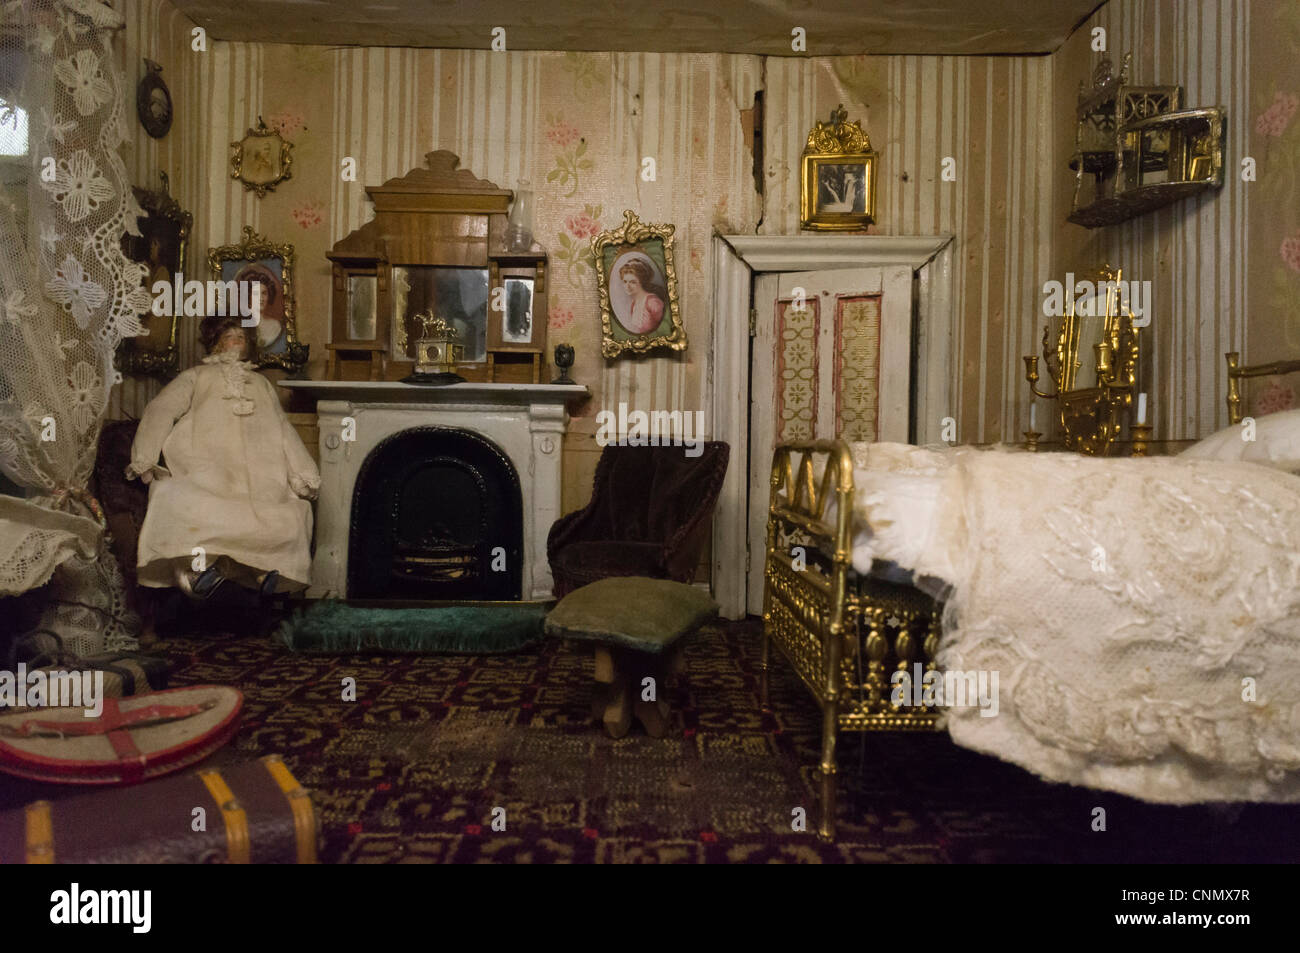 Victorian Style Old Dollu0027s House Interior   Stock Image